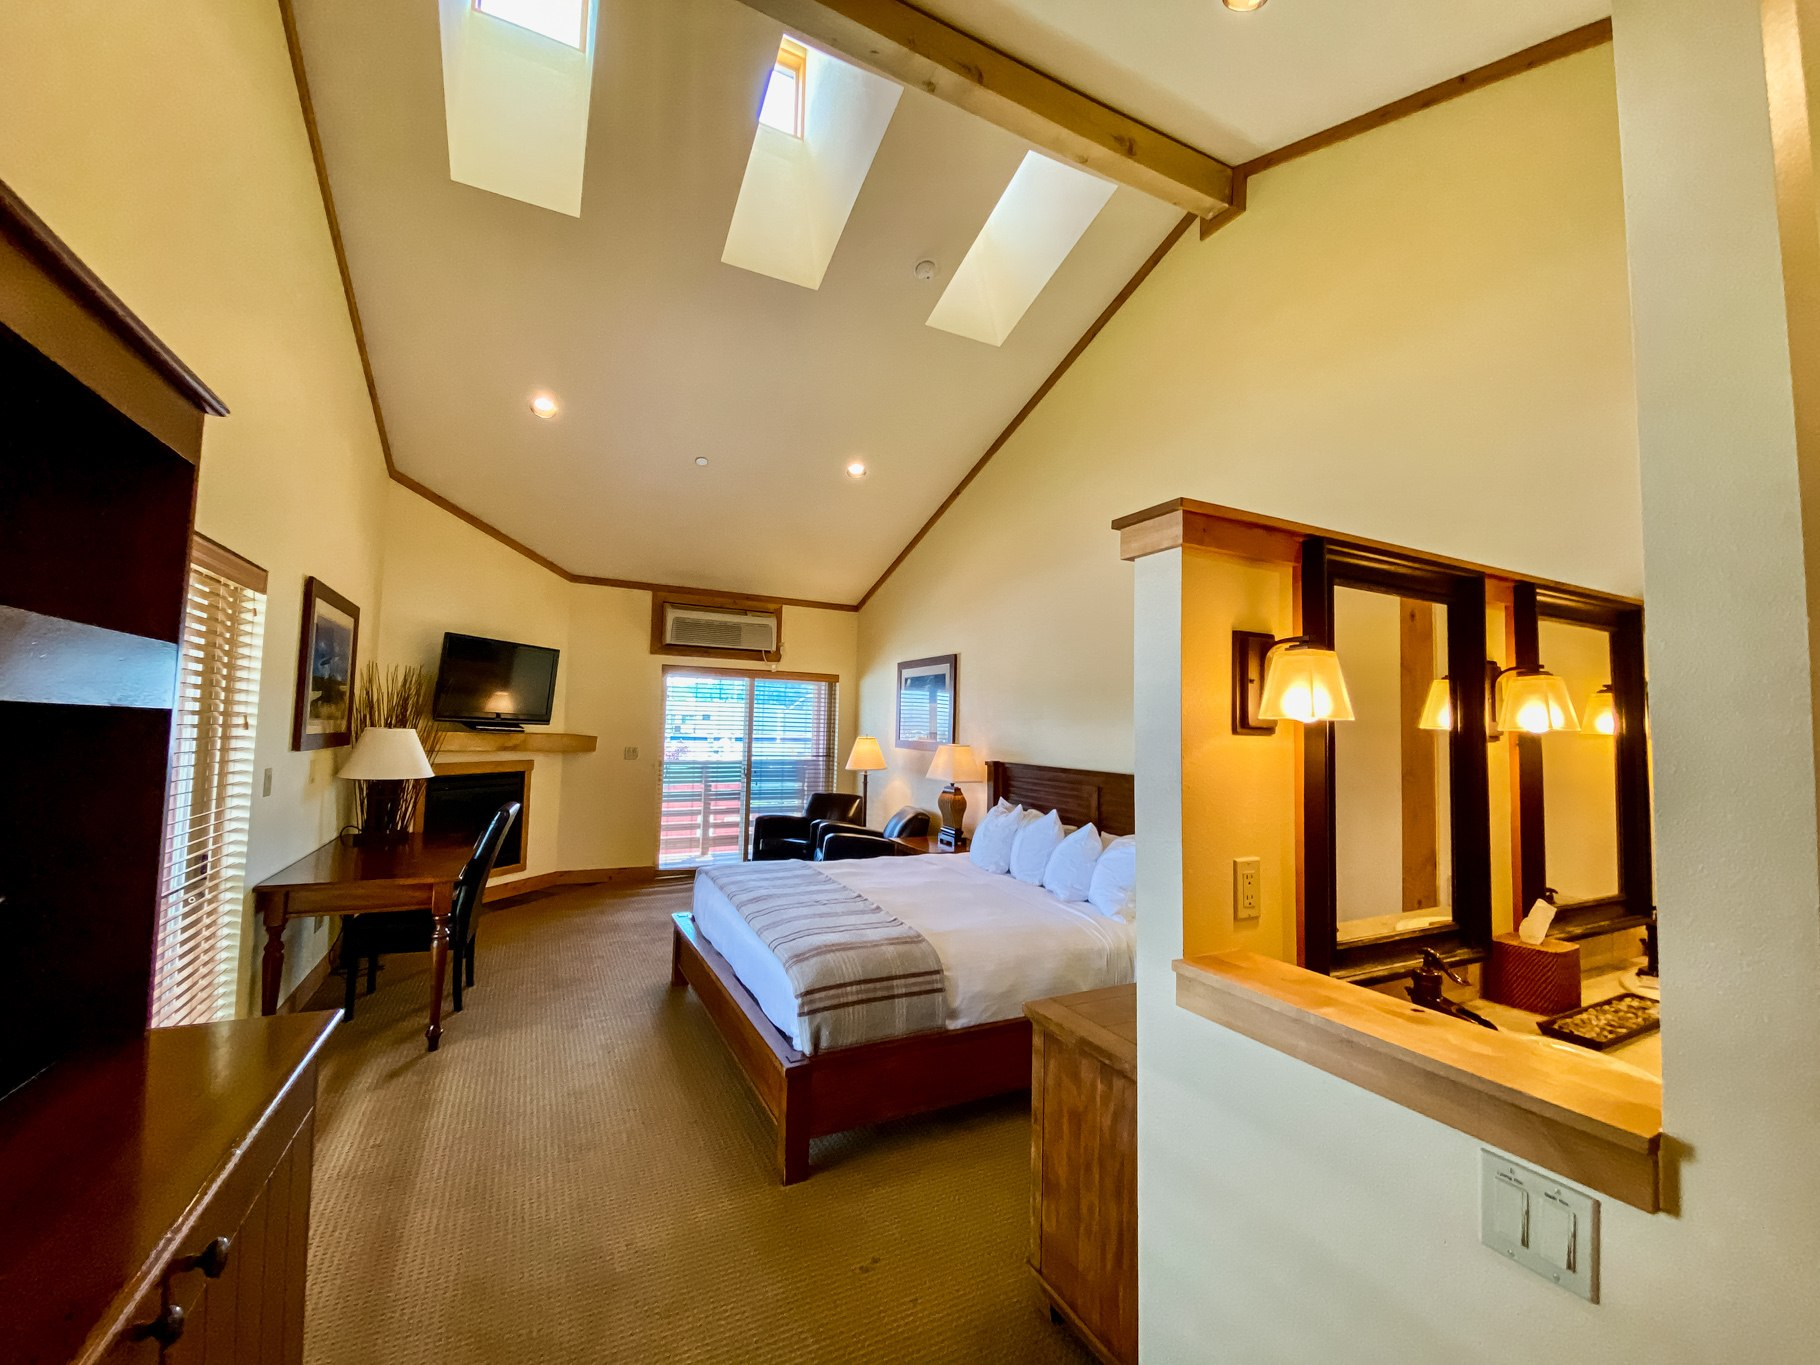 Deluxe-King-with-Vaulted-Ceilings-2